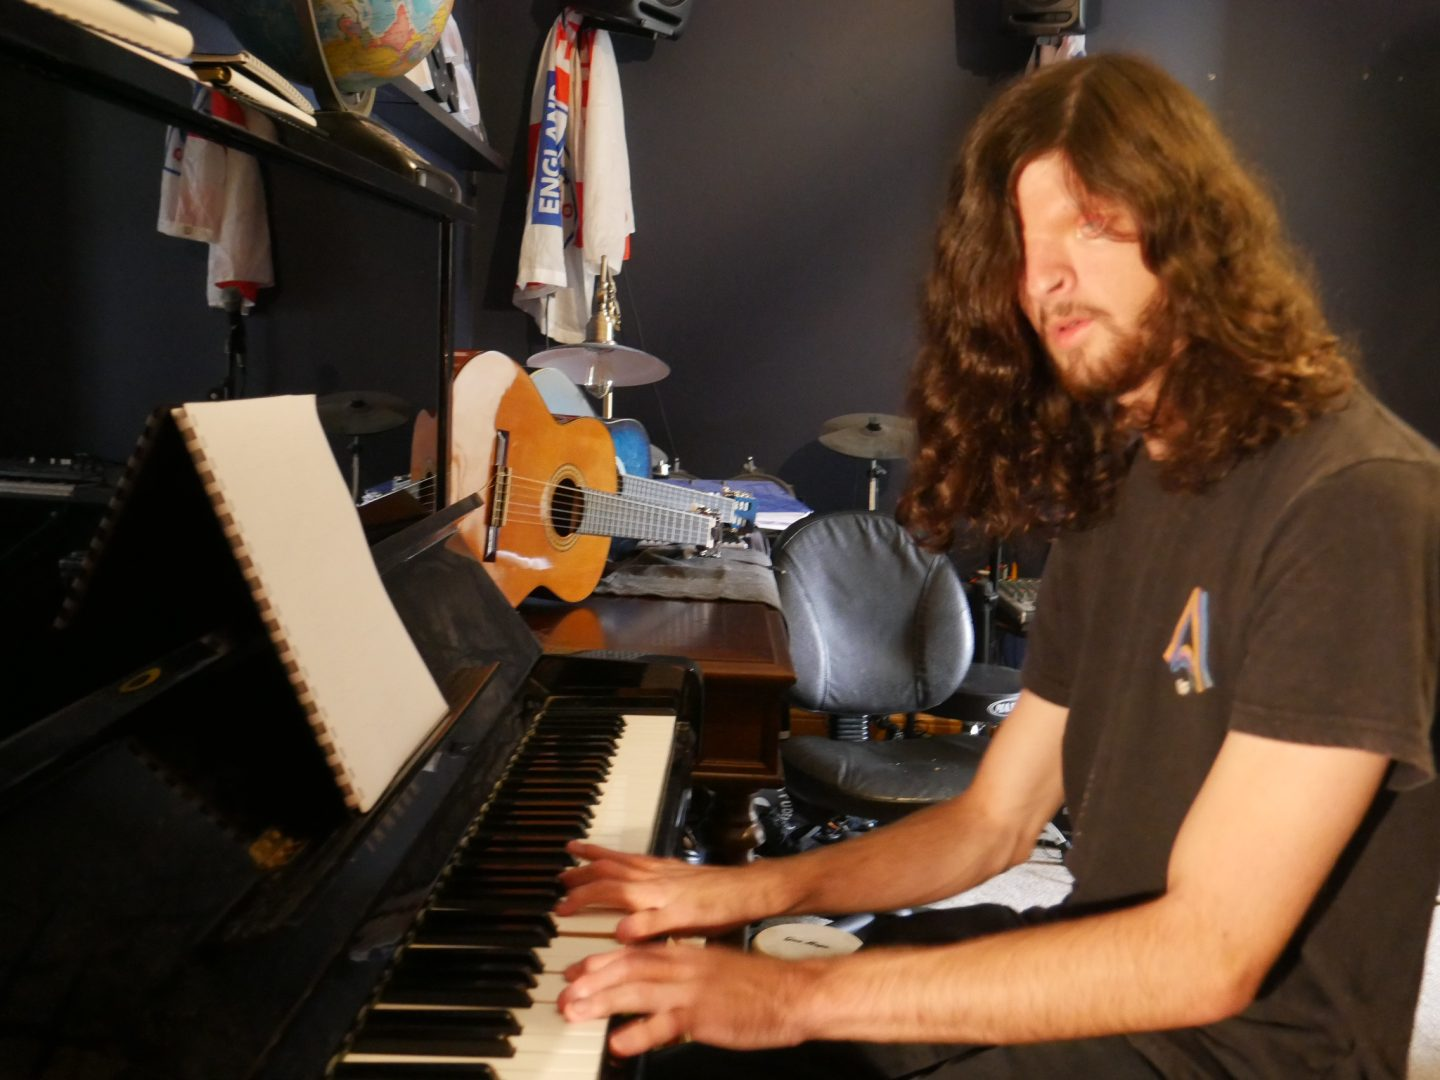 a man with long hair plays a piano